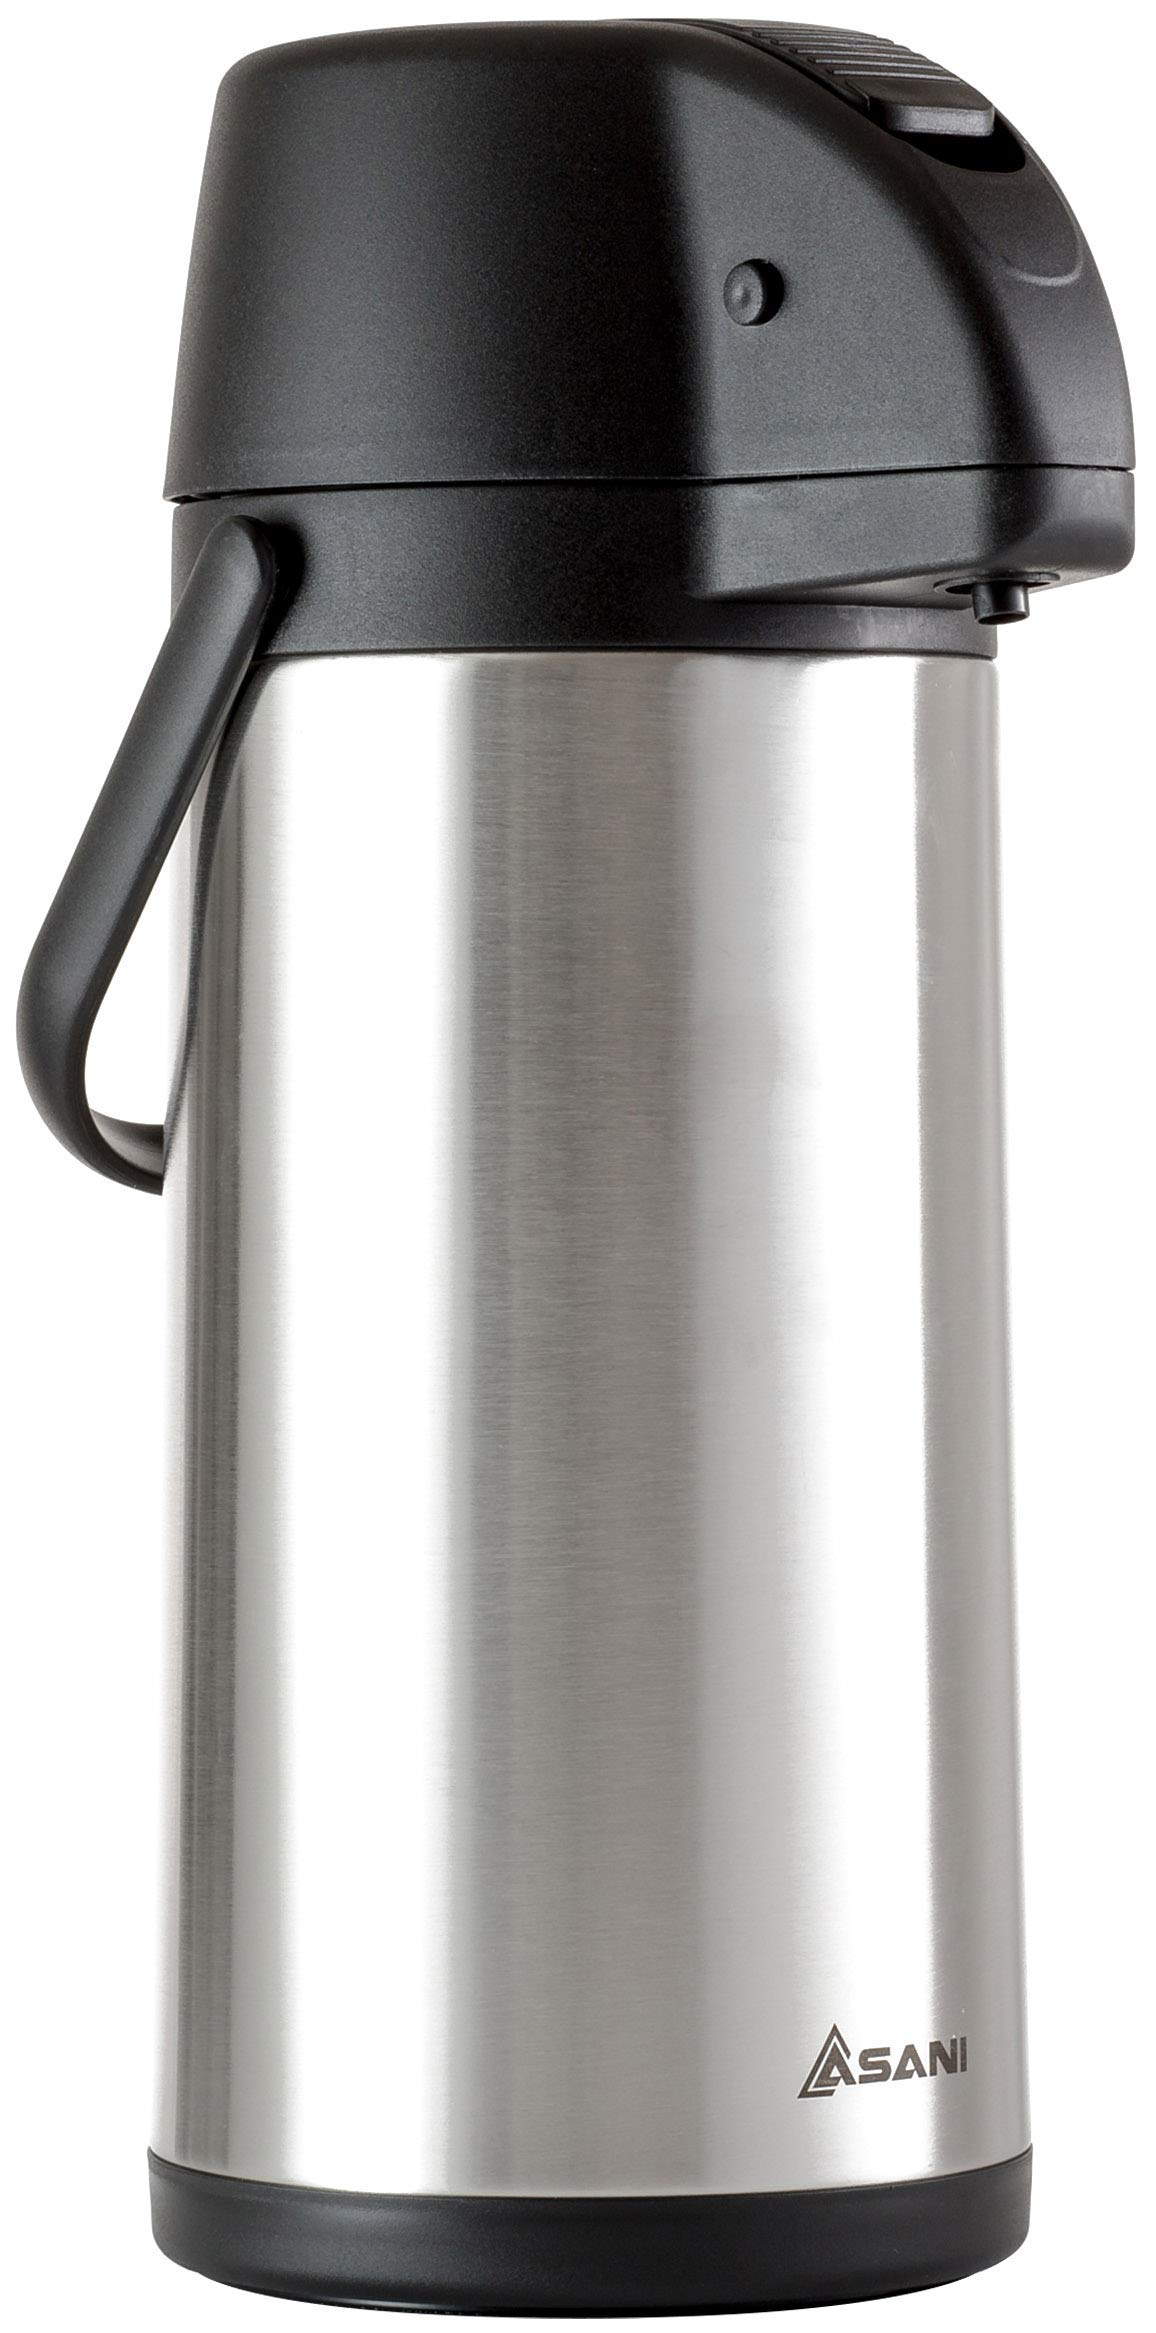 Thermal Coffee Airpot Carafe (101oz)   17-Cup Insulated Thermos with Pump Beverage Dispenser   20-Hour Hot and Cold Insulation   Stainless Steel Urn for Tea, Water, Coffee, Iced Drinks